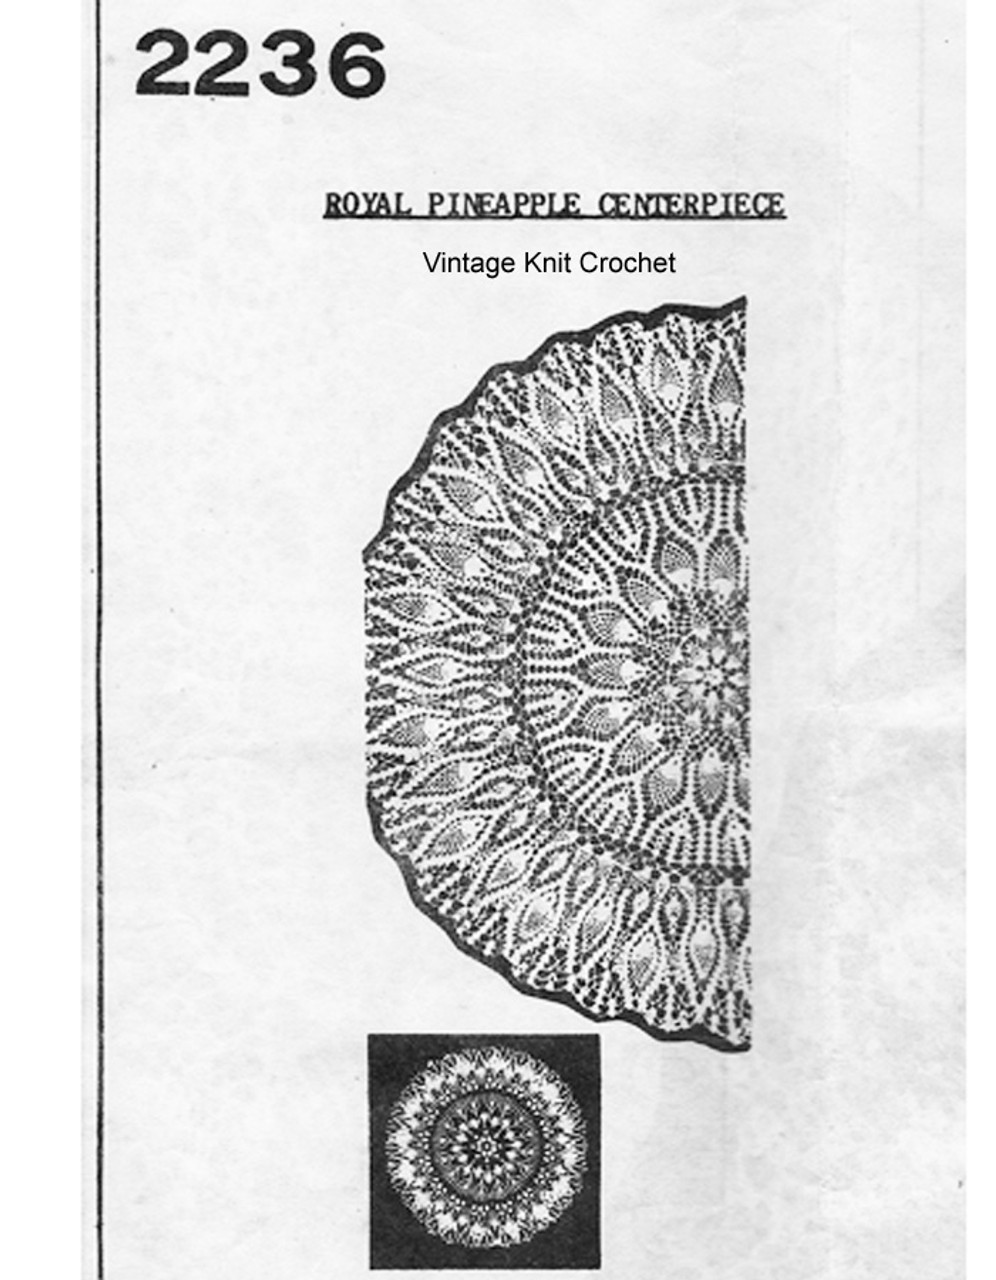 Crocheted Royal Pineapple Doily Pattern, Mail Order 2236